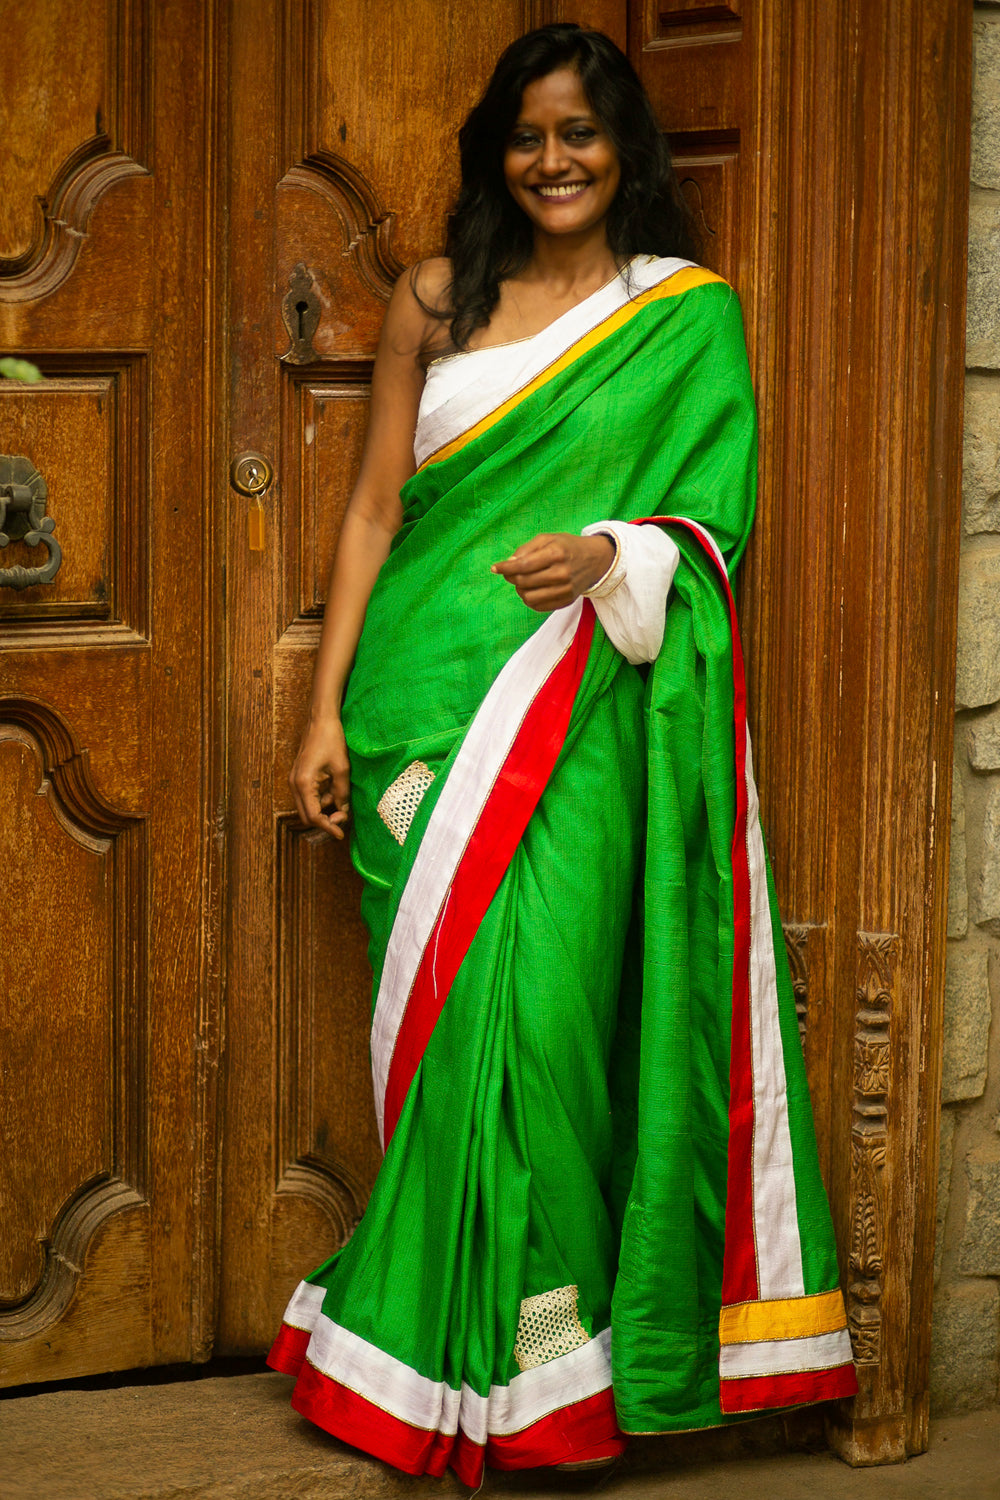 Forest green raw silk saree with red, white and yellow borders and disjointed lace detailing - House of Blouse